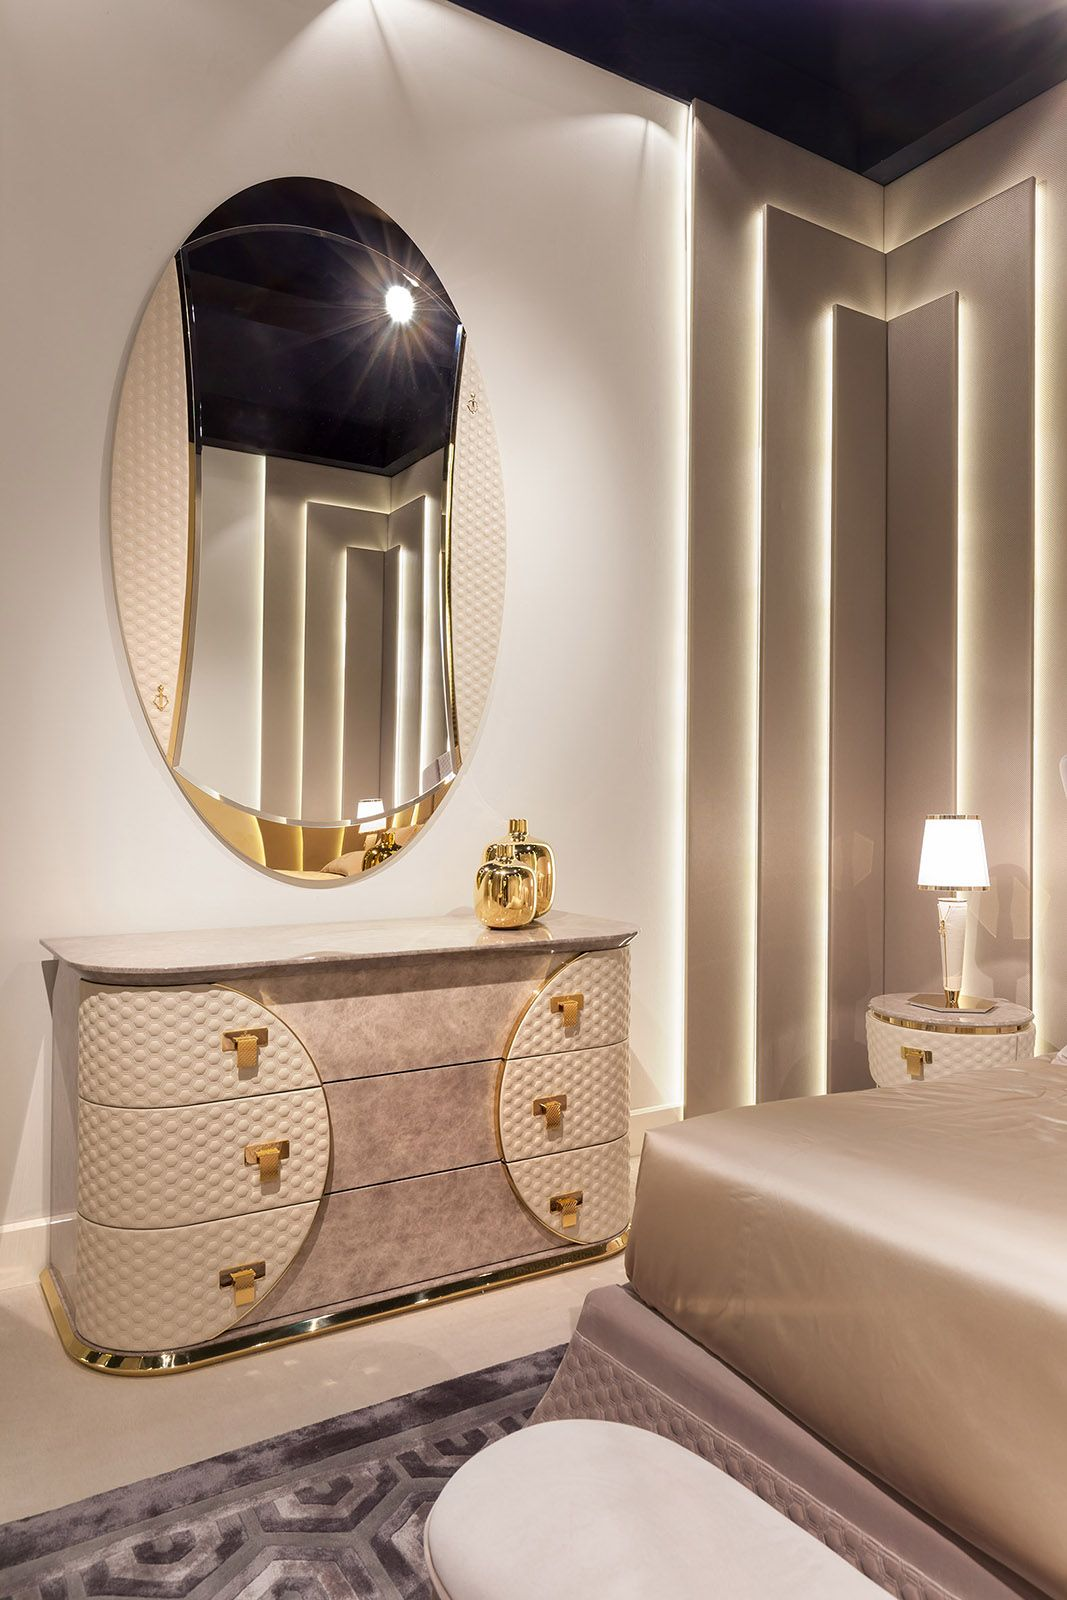 Italian Furniture Designers Luxury Italian Style And: Italian Furniture For Exclusive And Modern Design